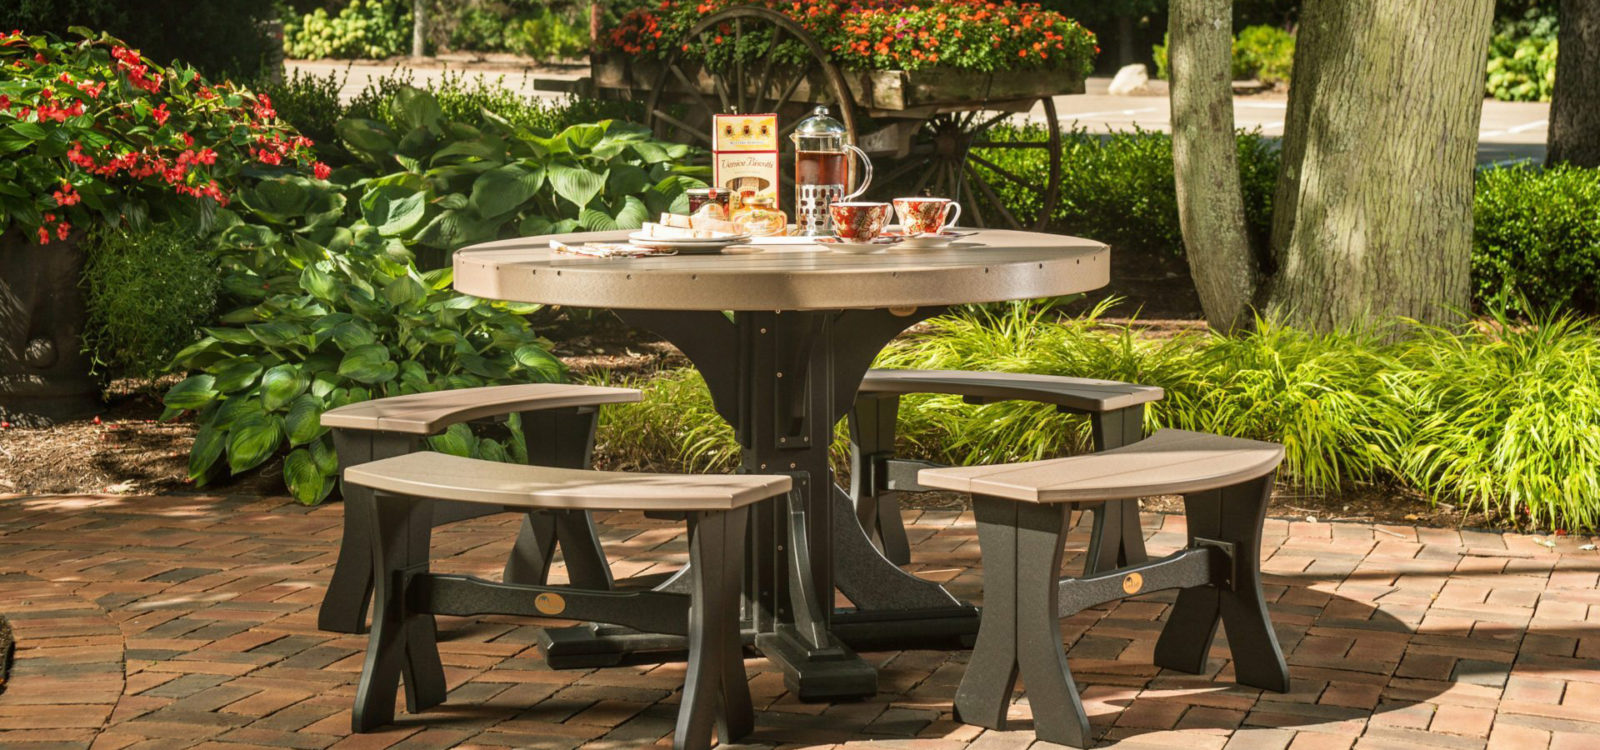 patio table Round Table Set with Benches Weatherwood Black